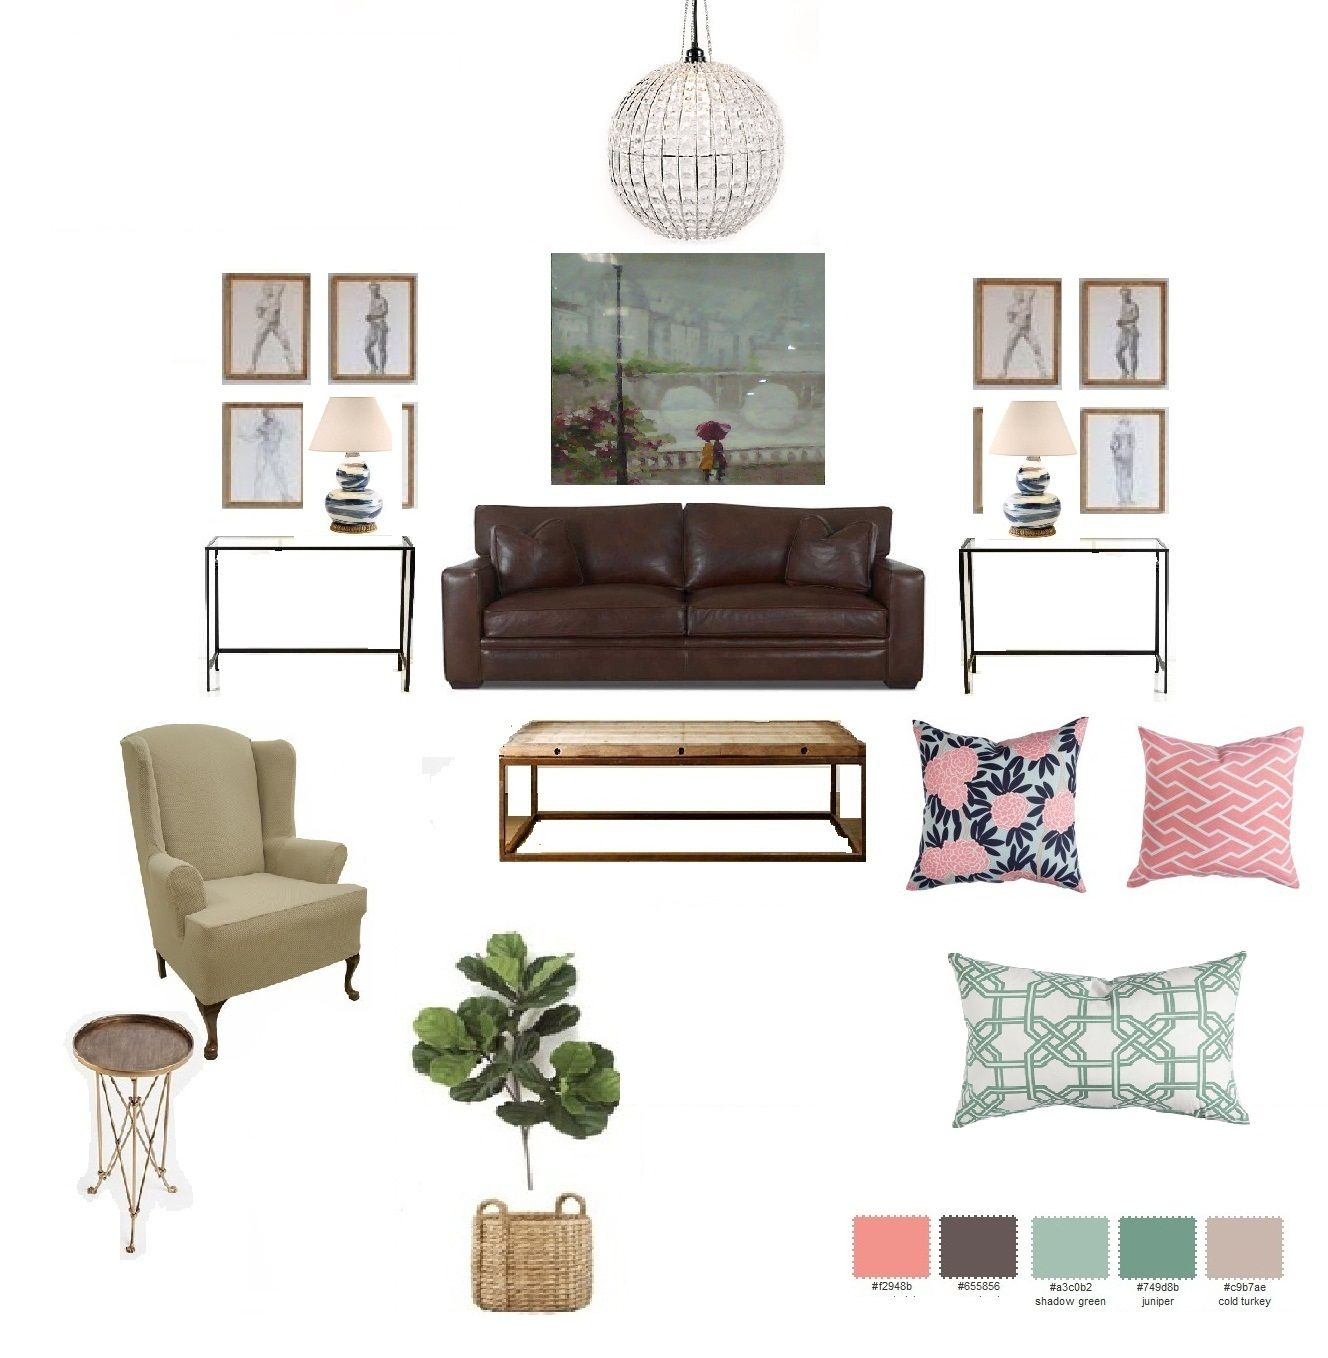 design board for my living room, inspired in french/industrial style ...